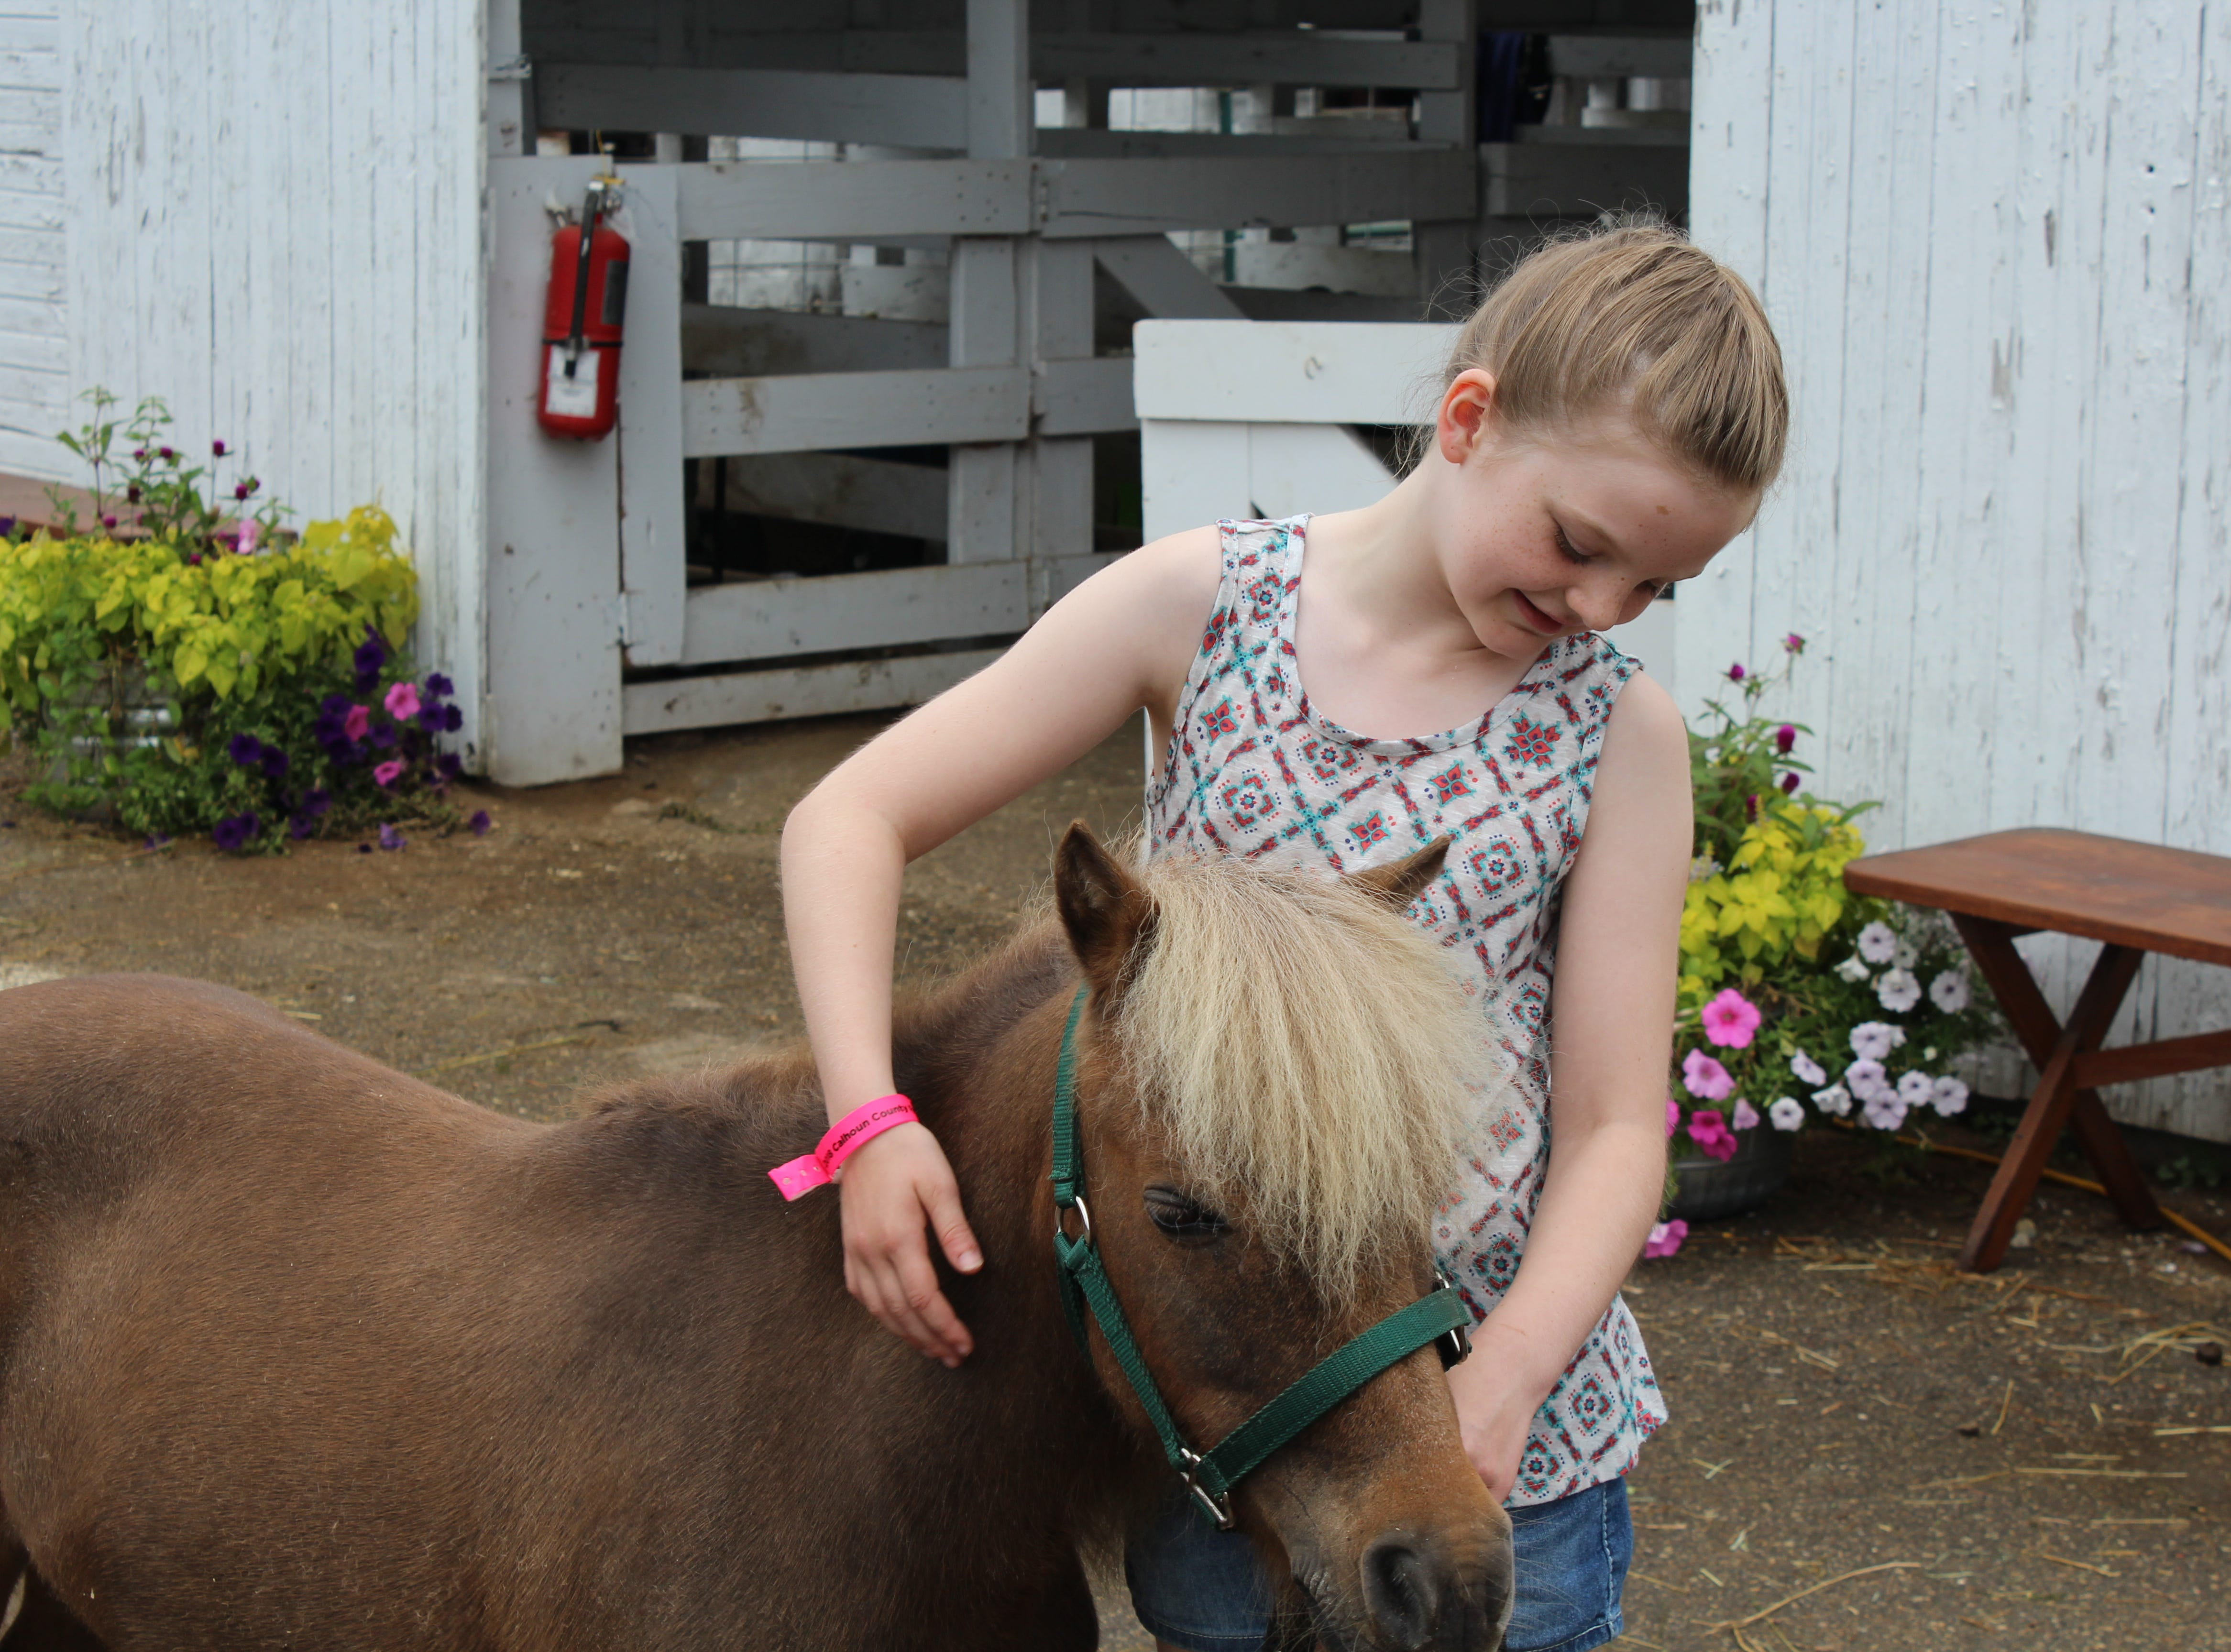 Maeve Russell, 10, of Bellevue shows off her miniature horse, Shamrock.